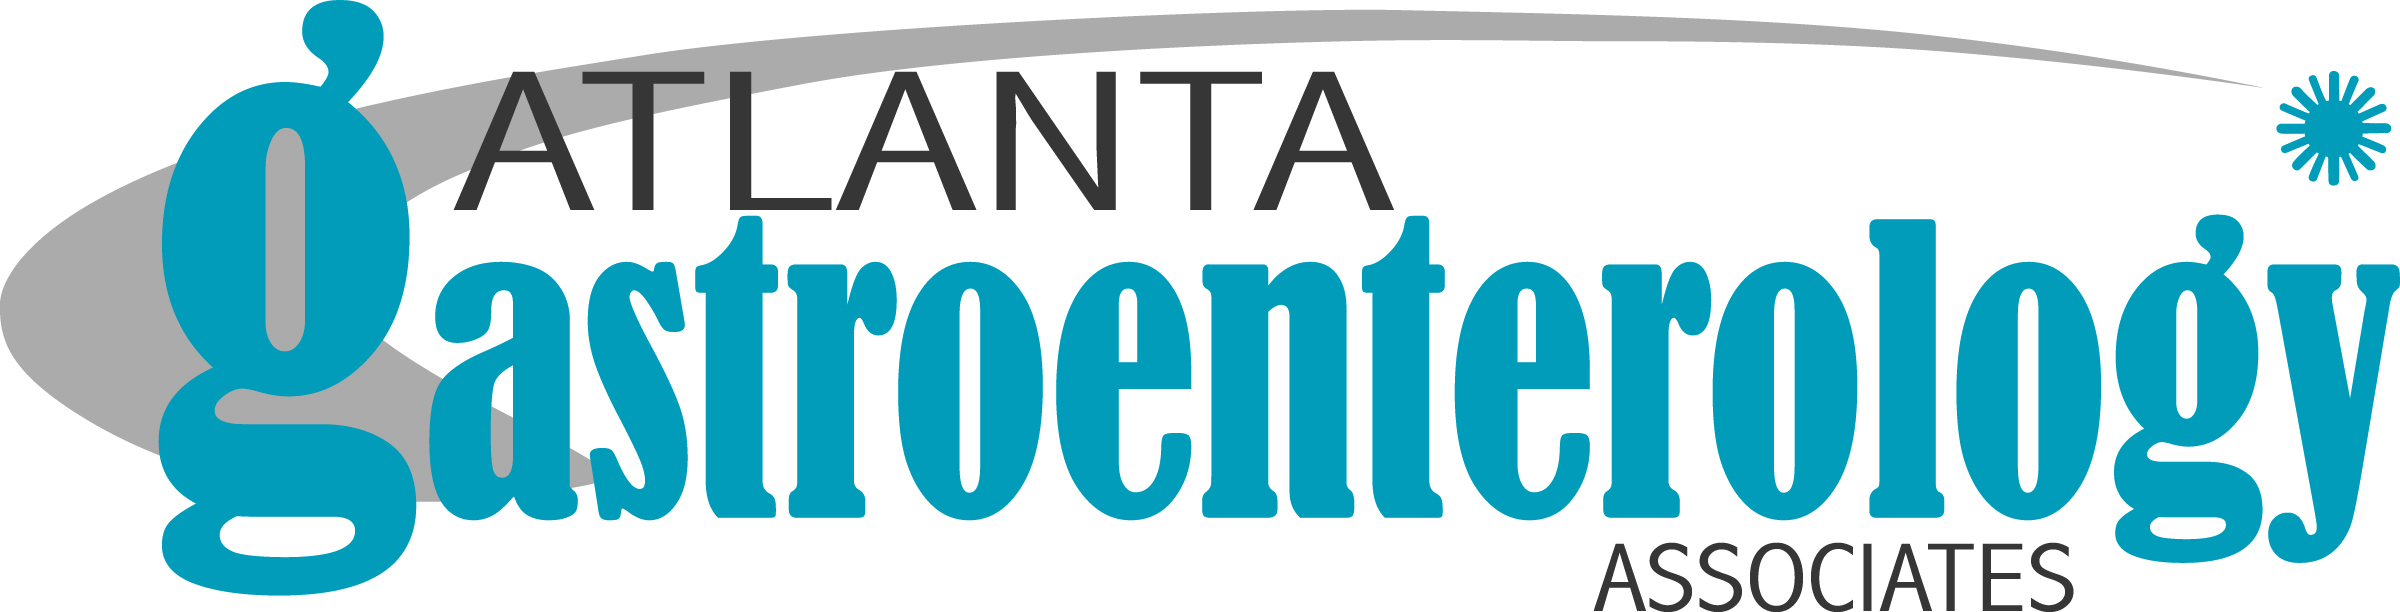 Atlanta Gastroenterology Associates Specialists